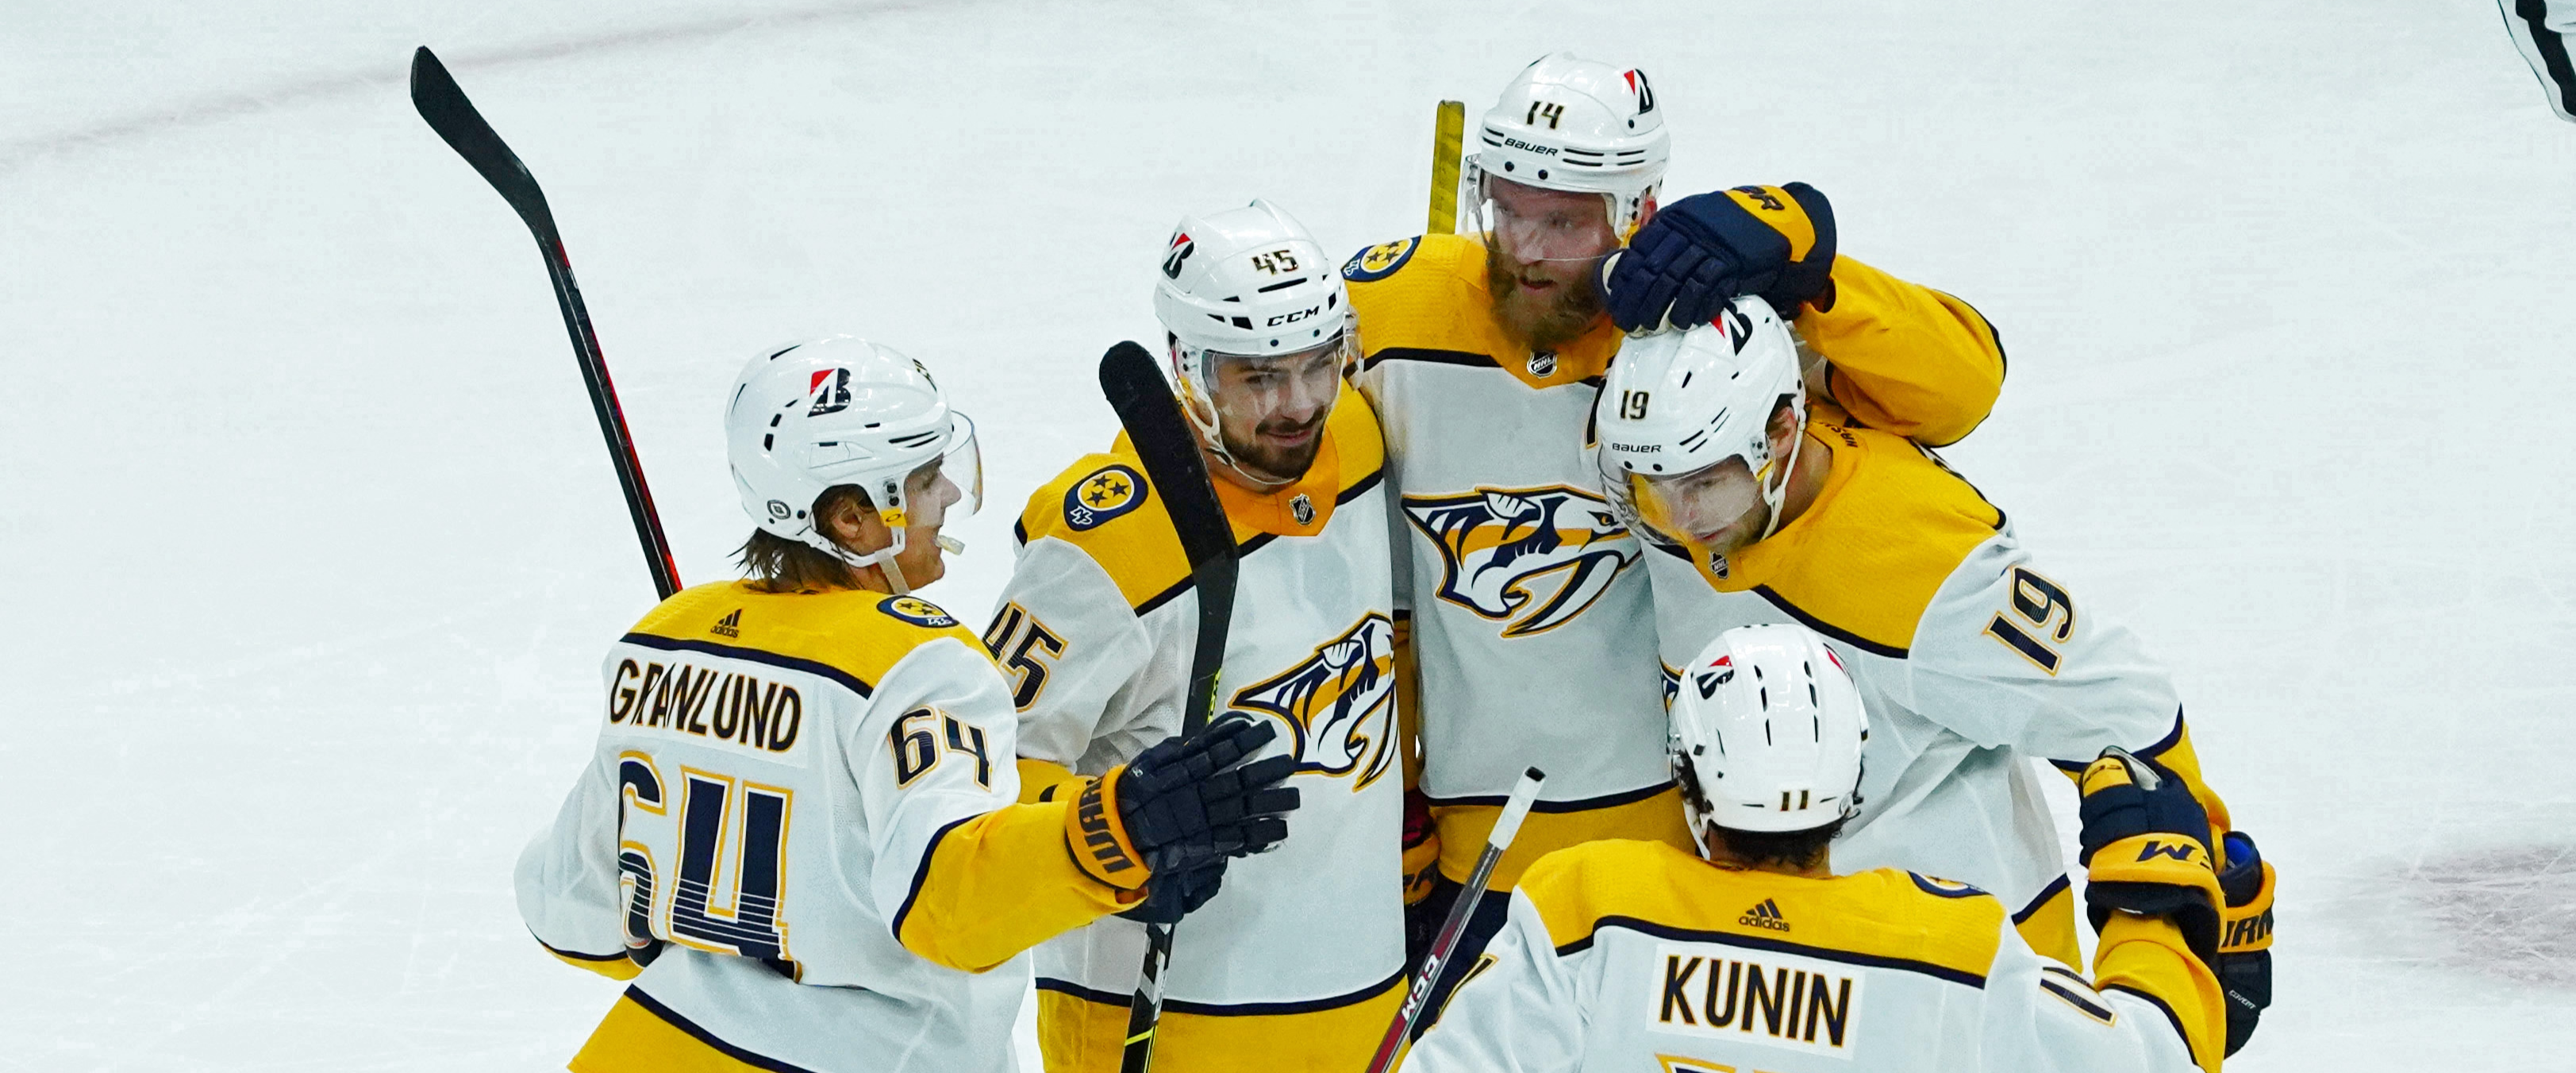 Predators win their fifth in a row!